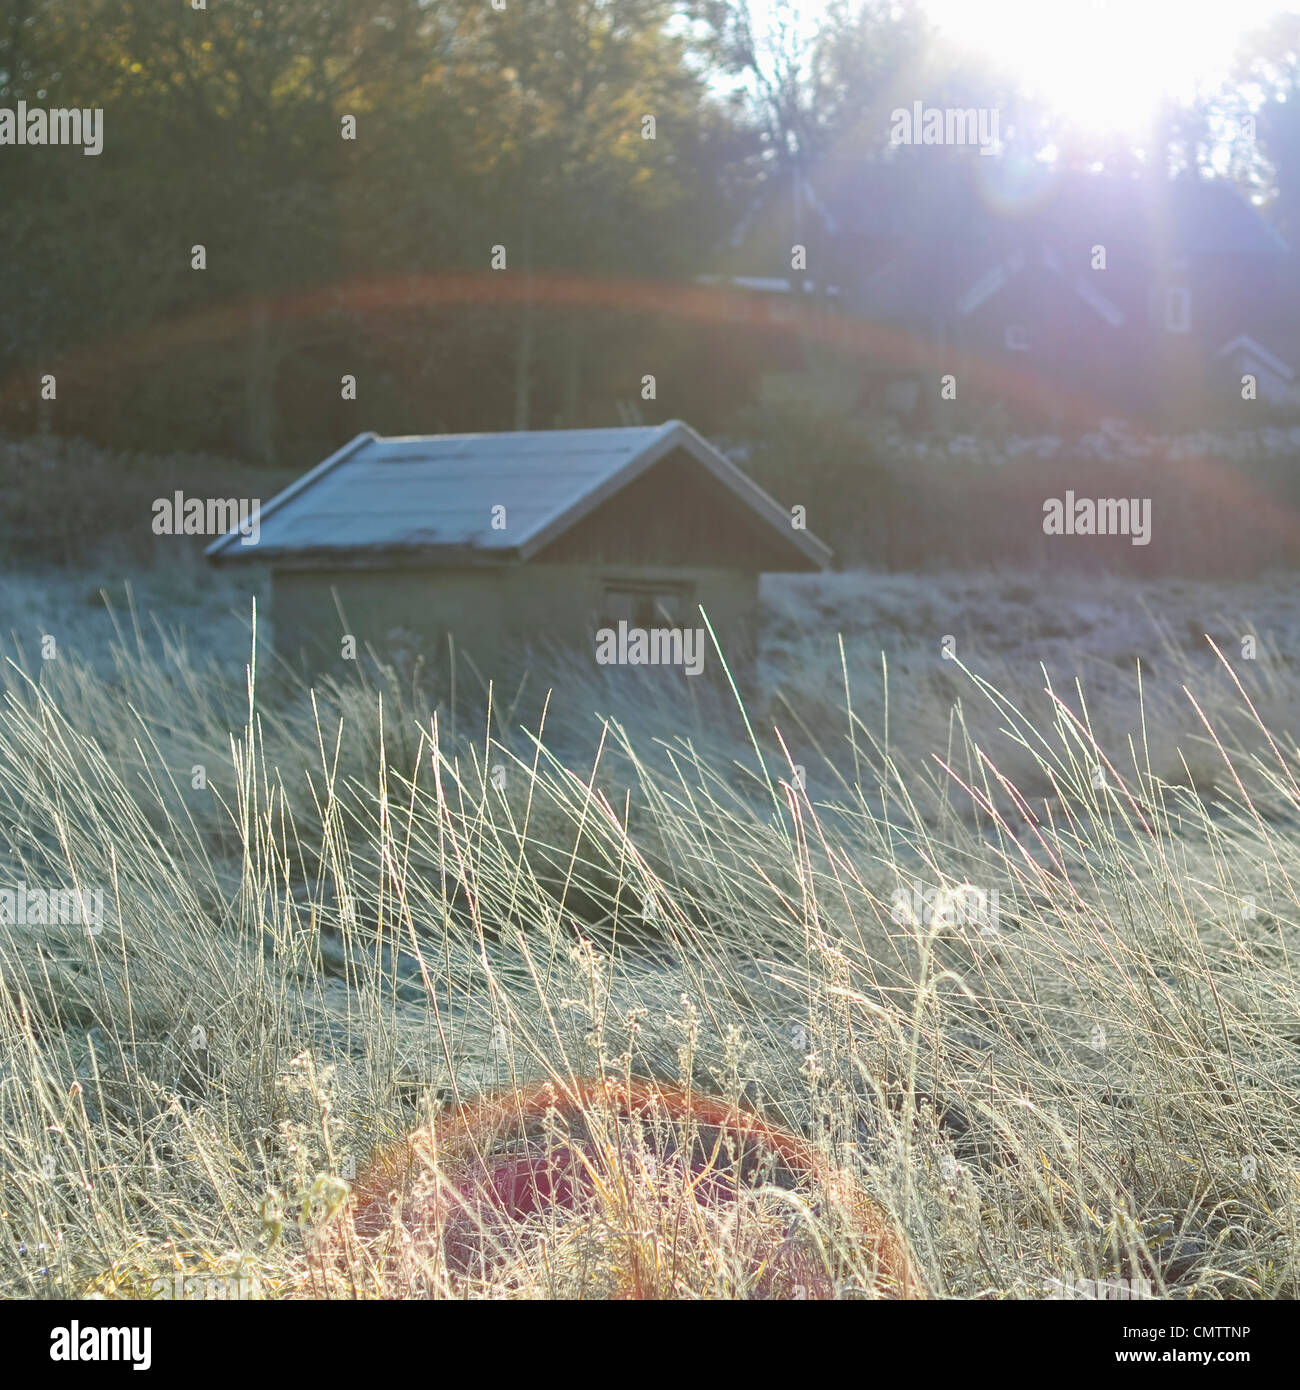 Frosty shed in autumn sun - Stock Image